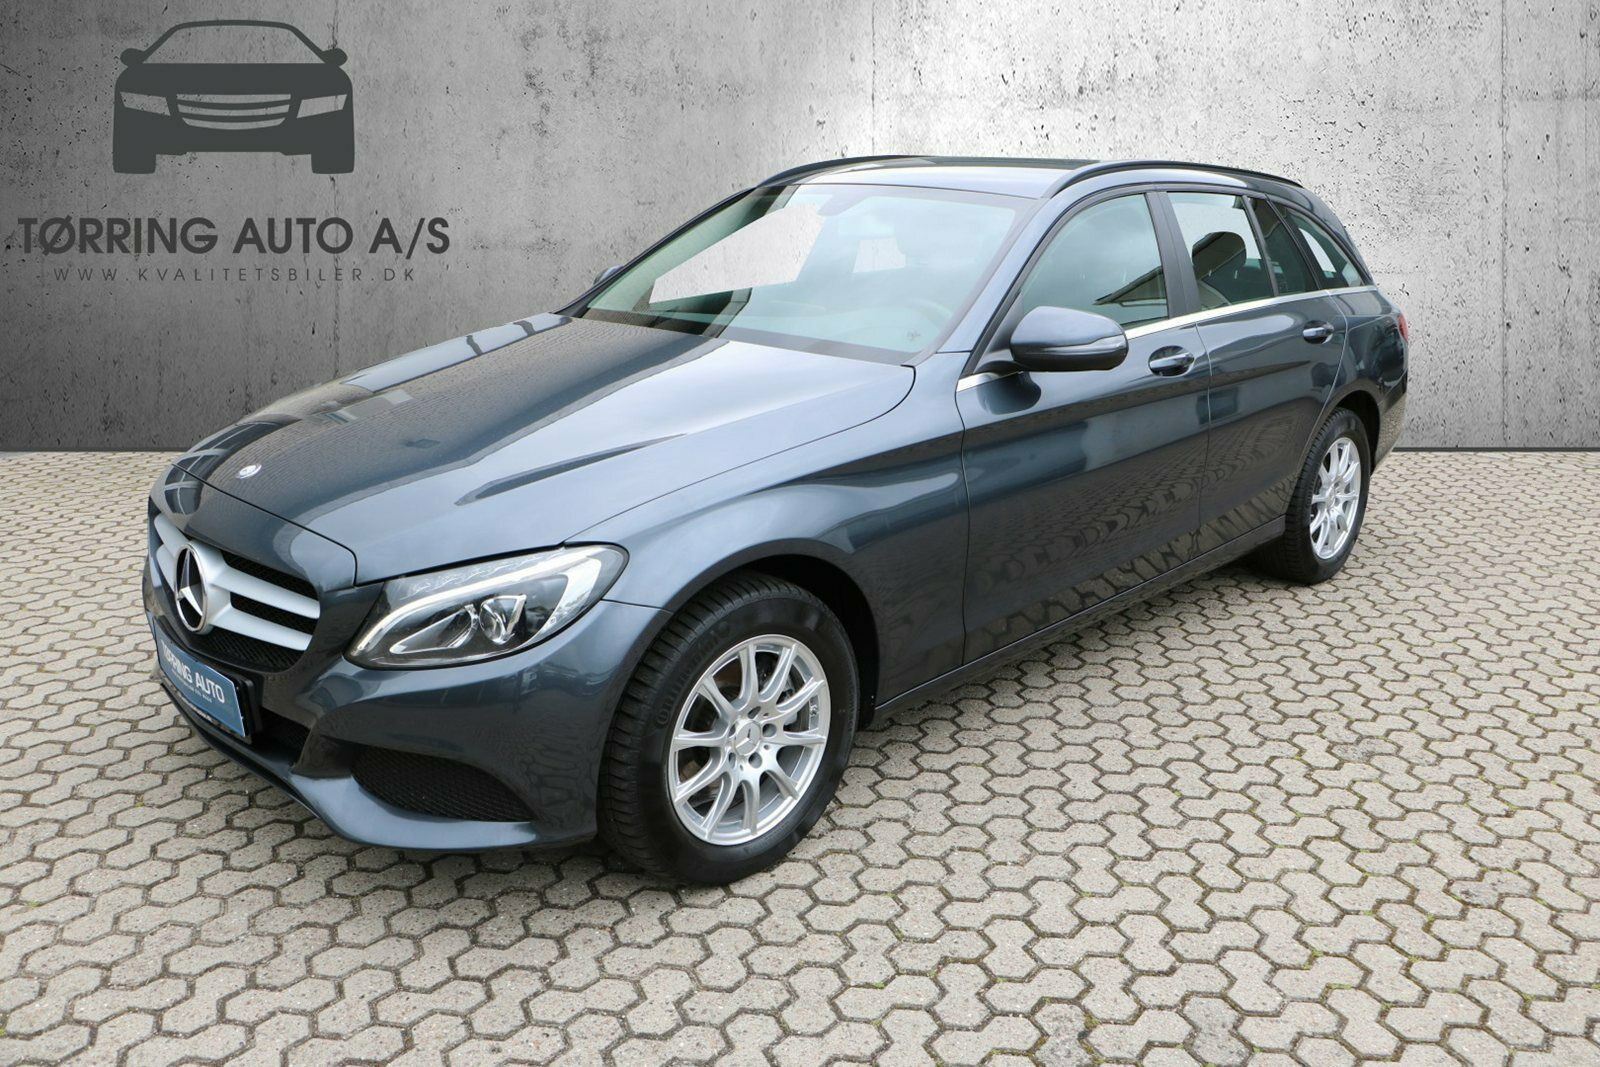 Mercedes C200 d 2,2 Business stc. aut. 5d - 259.900 kr.